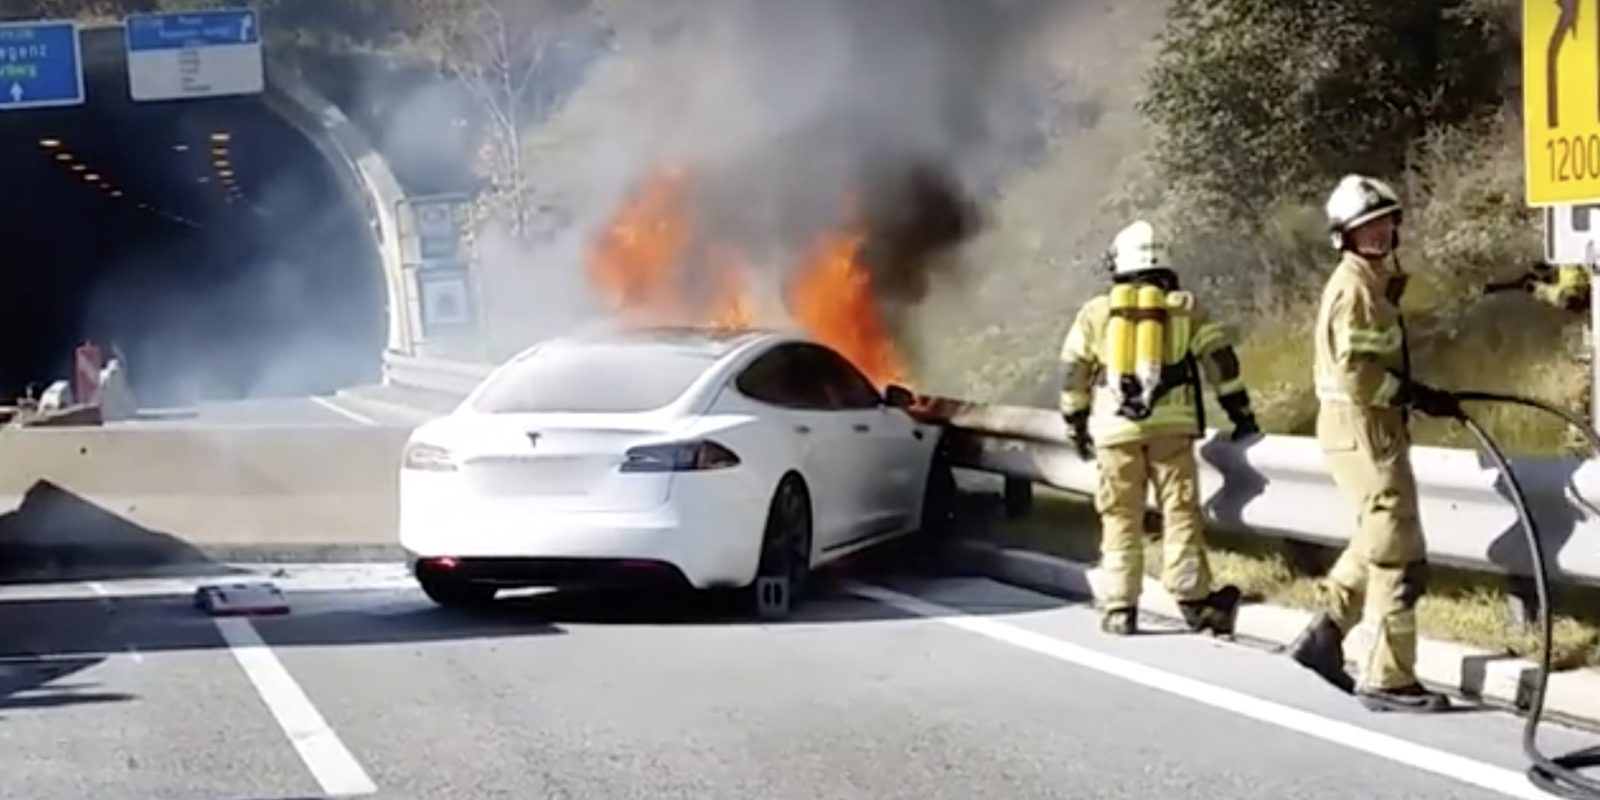 Tesla Model S fire vs 35 firefighters – watch impressive operation after a high-speed crash